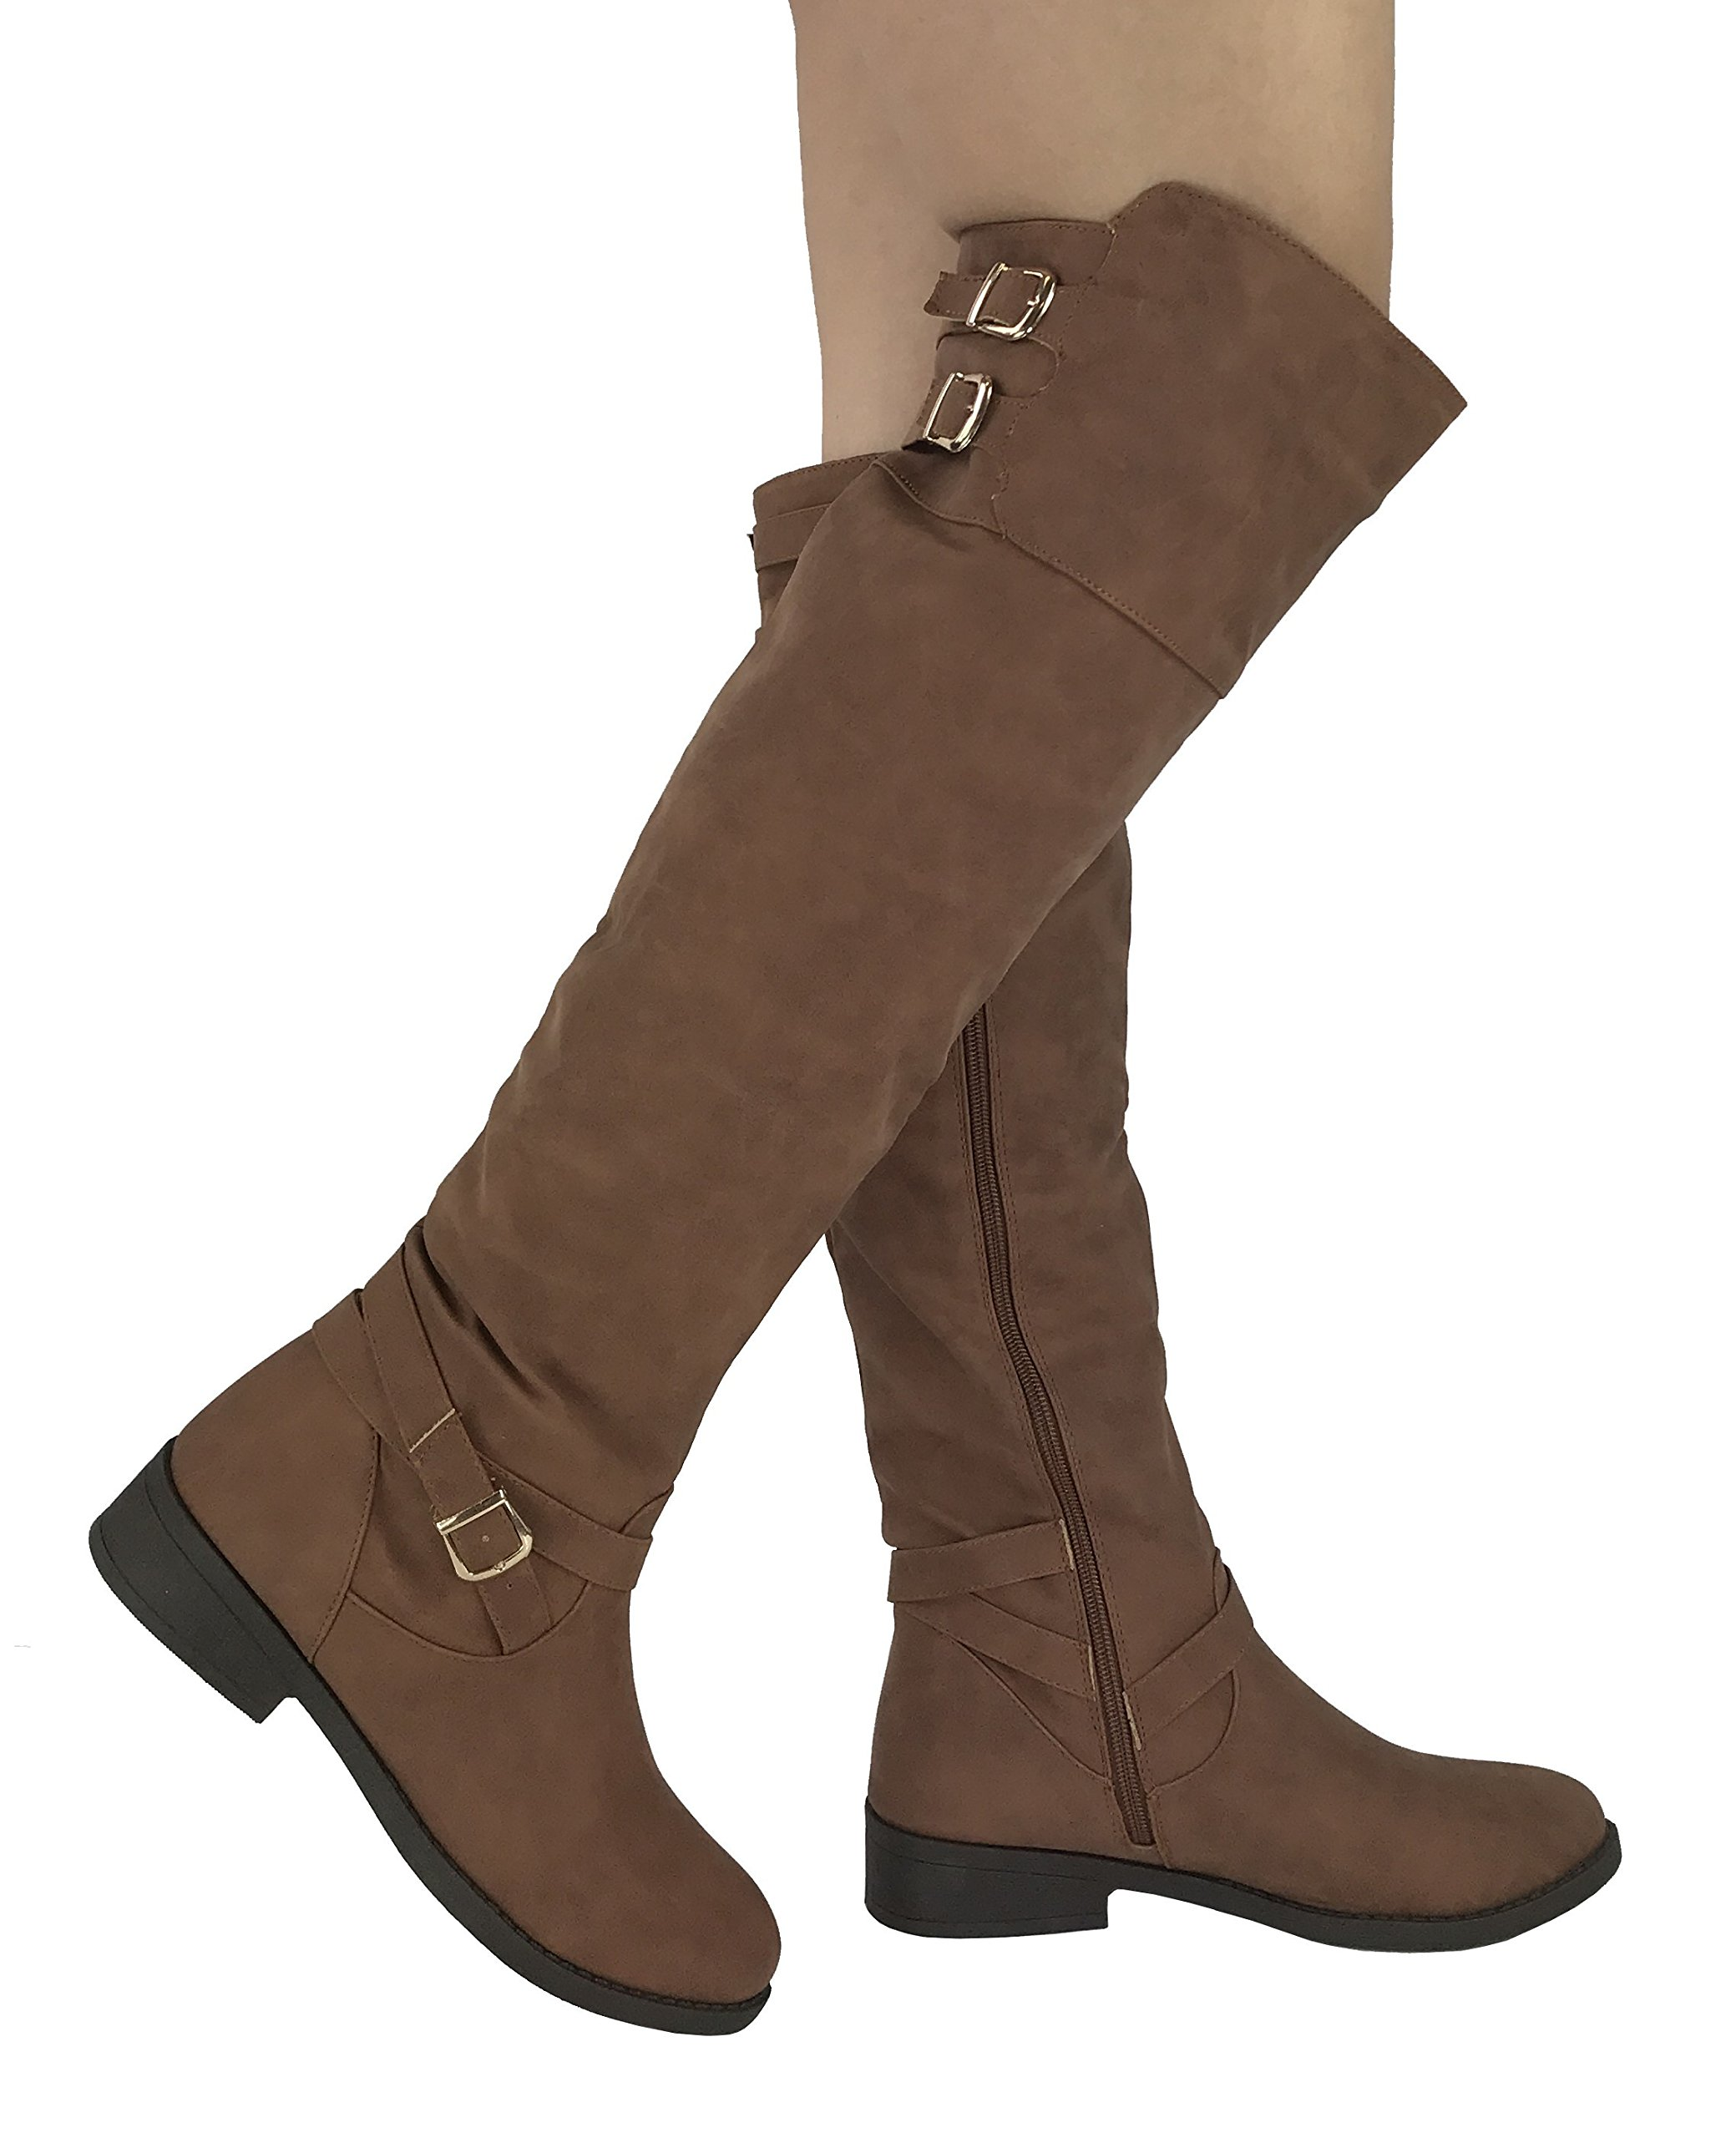 Wells Collection Womens Fiorina Over The Knee High Tall Riding Boots Zipper, Brown, 10